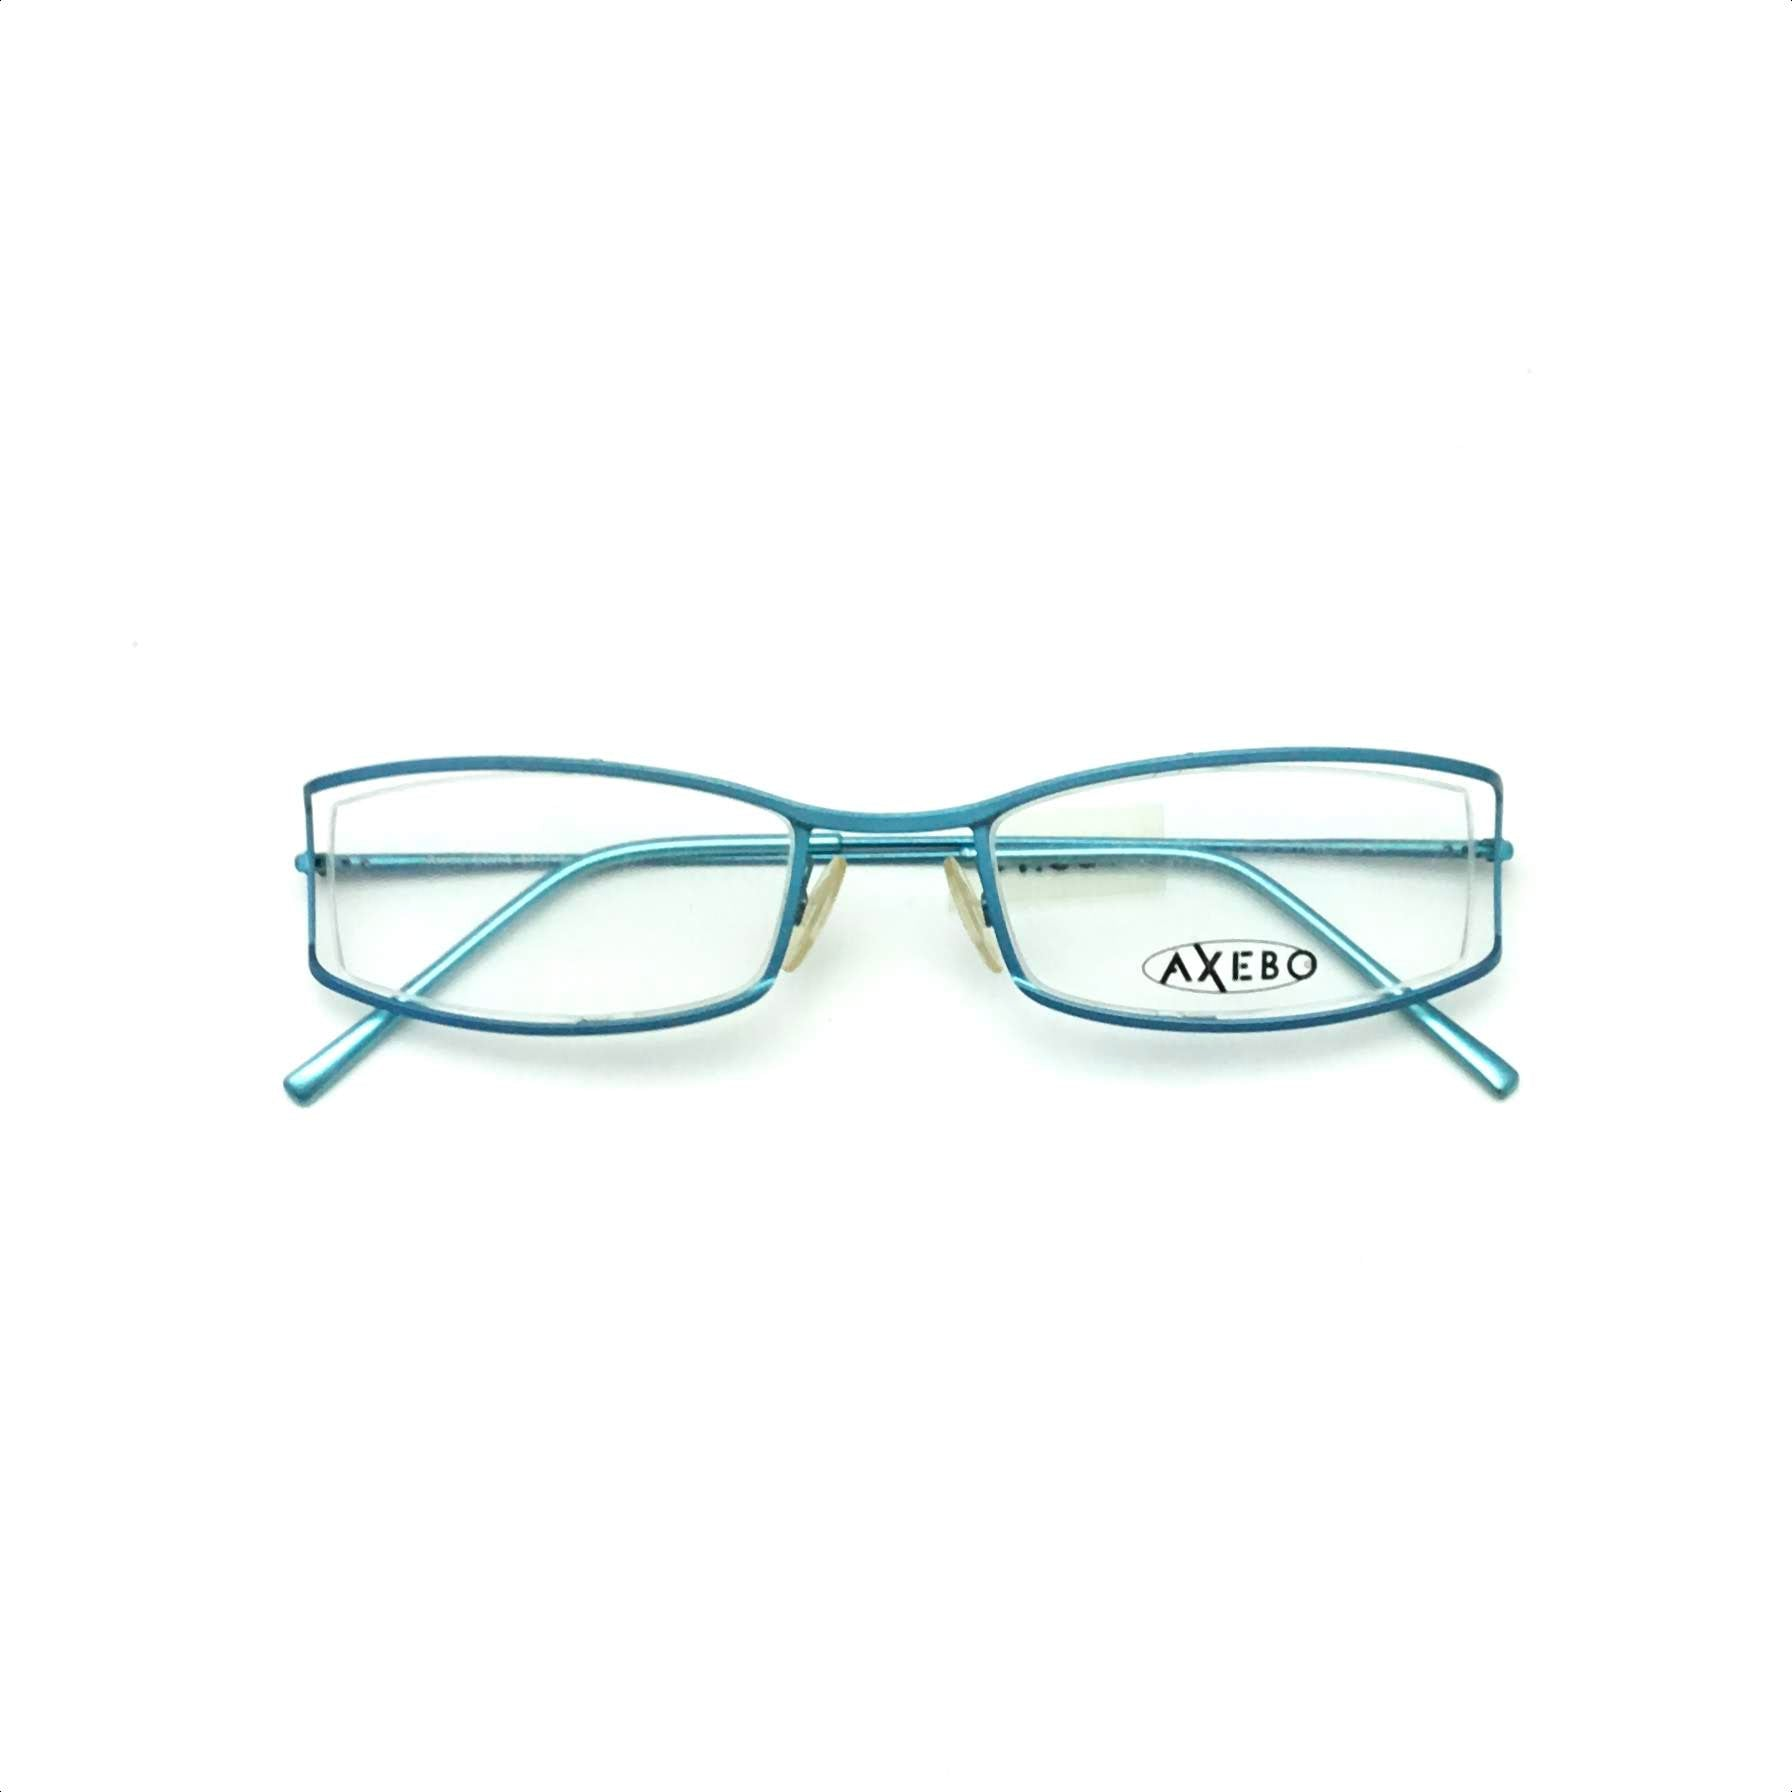 Axebo Glasses $19 Nylon A4